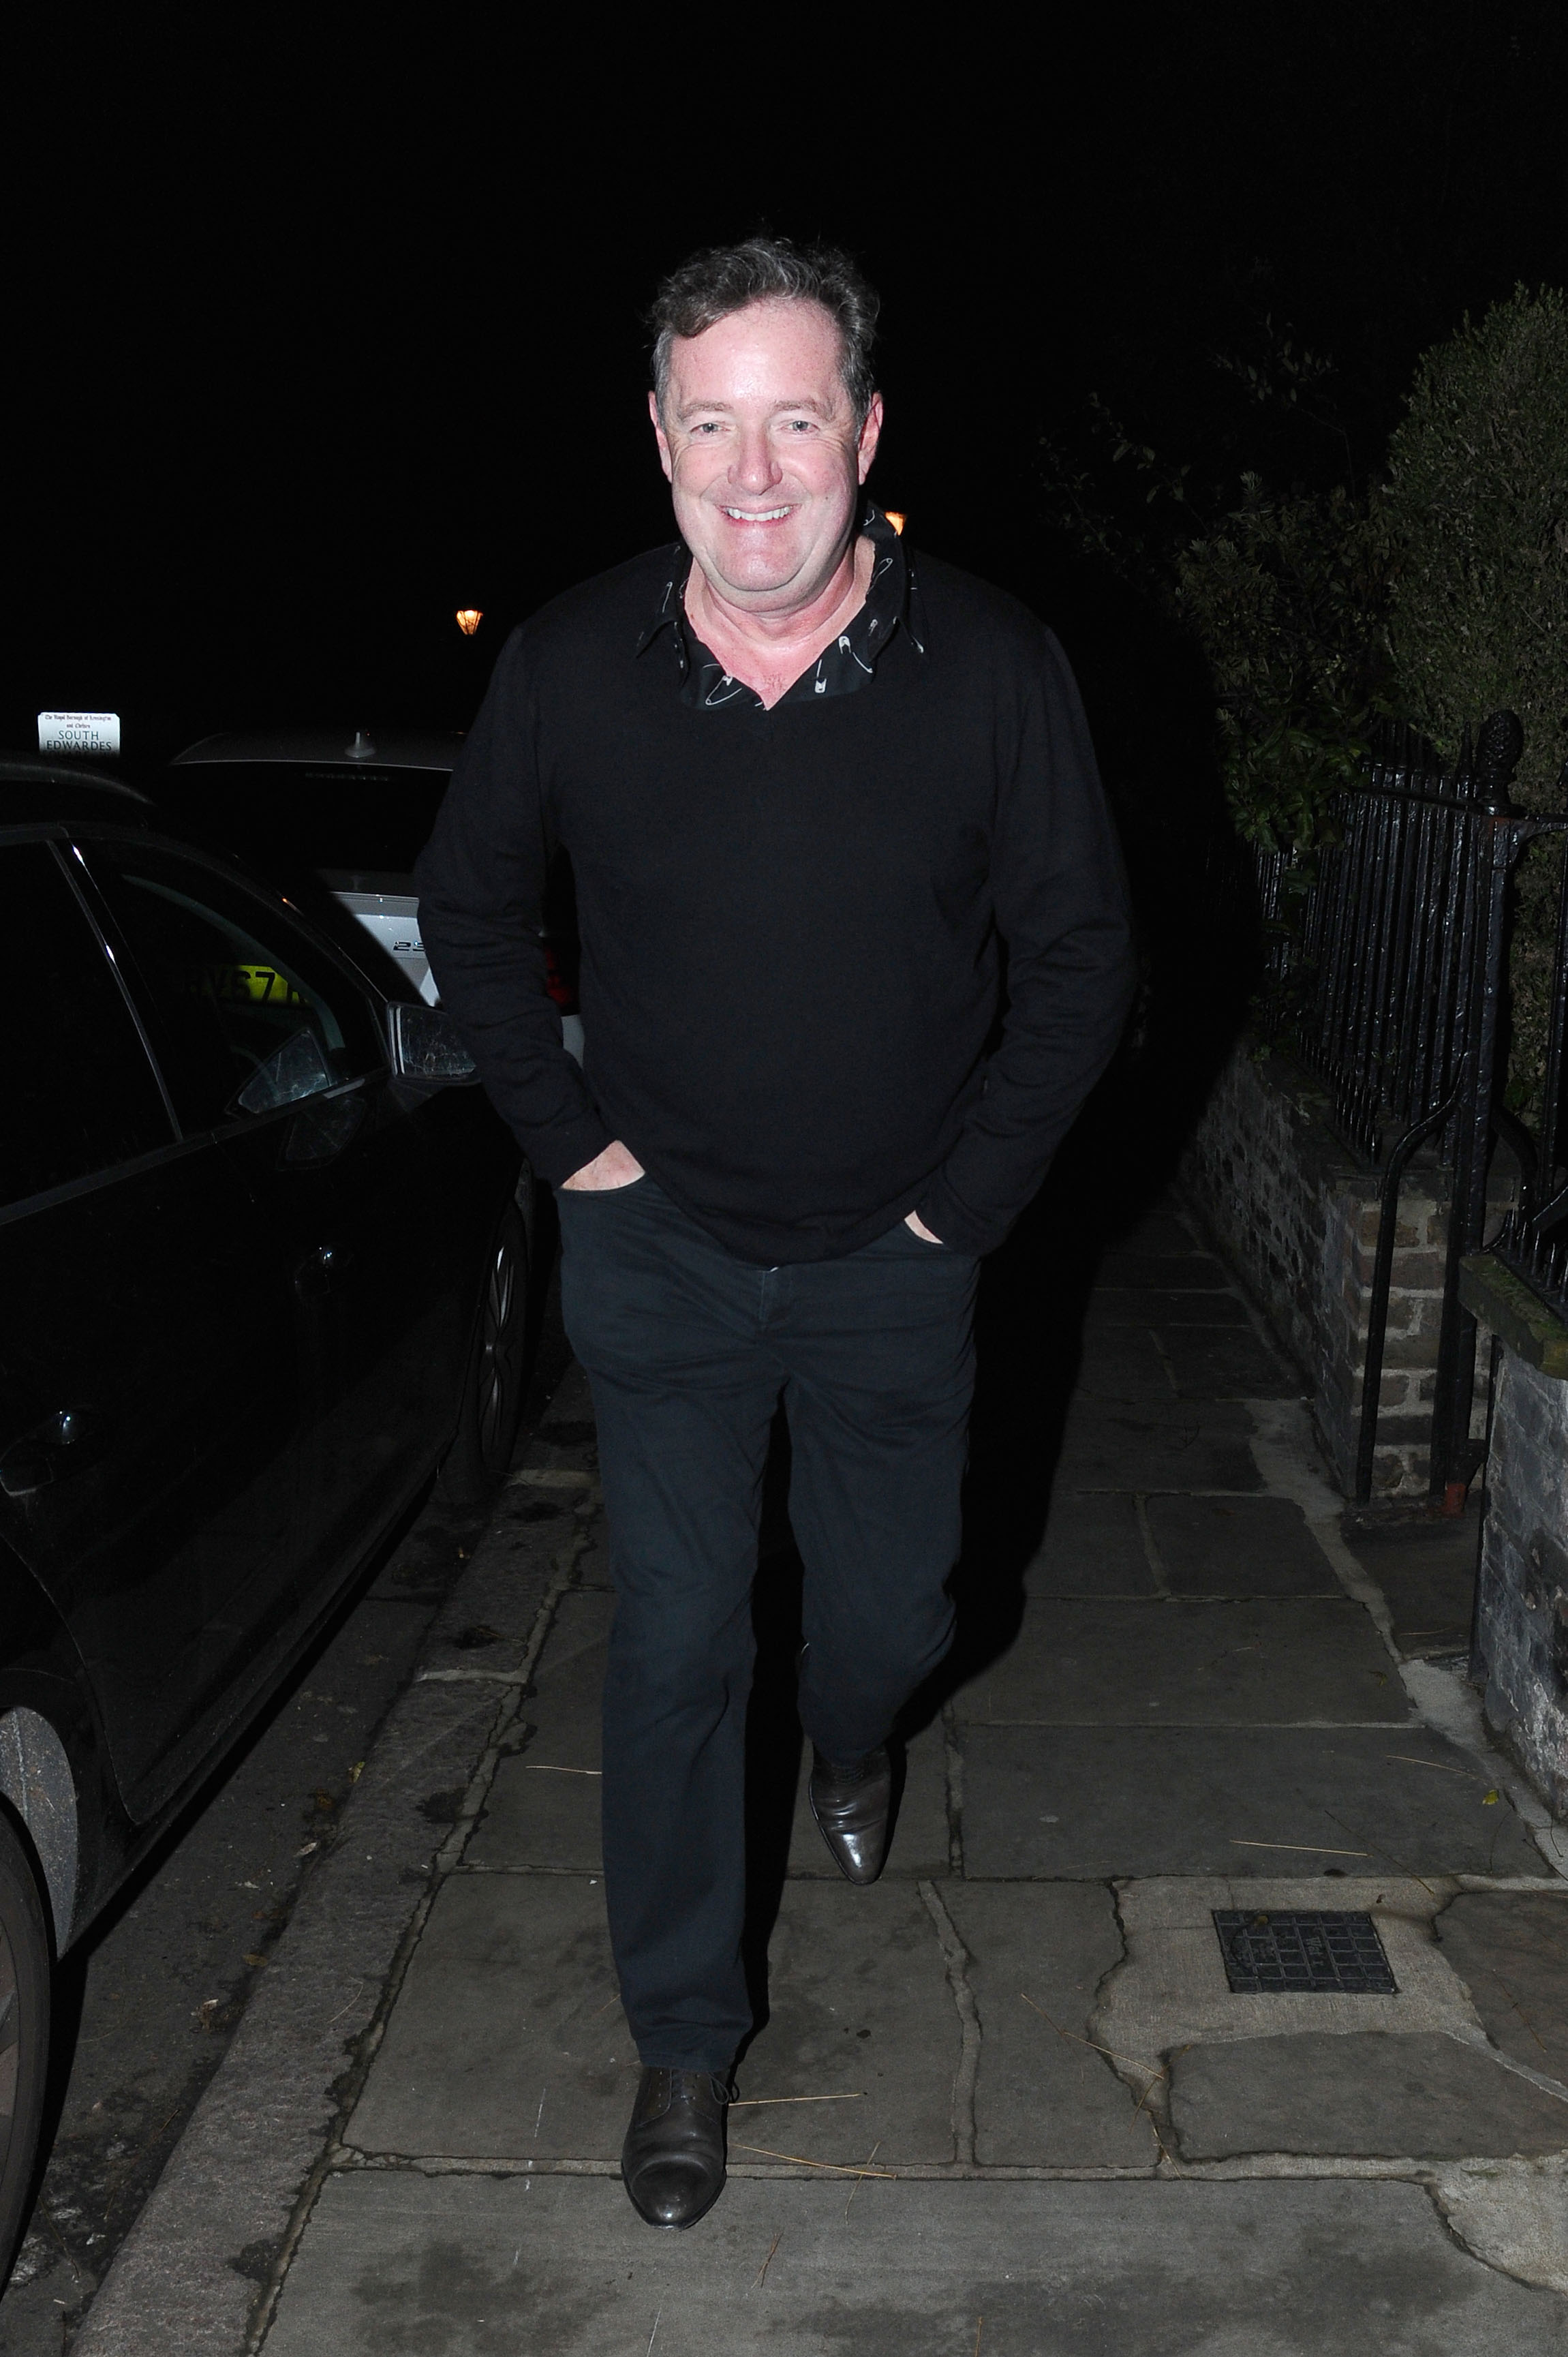 Celebrities Attend Piers Morgan Christmas Party In Kensington Pictured: Piers Morgan Ref: SPL5051105 211218 NON-EXCLUSIVE Picture by: SplashNews.com Splash News and Pictures Los Angeles: 310-821-2666 New York: 212-619-2666 London: 0207 644 7656 Milan: 02 4399 8577 photodesk@splashnews.com World Rights